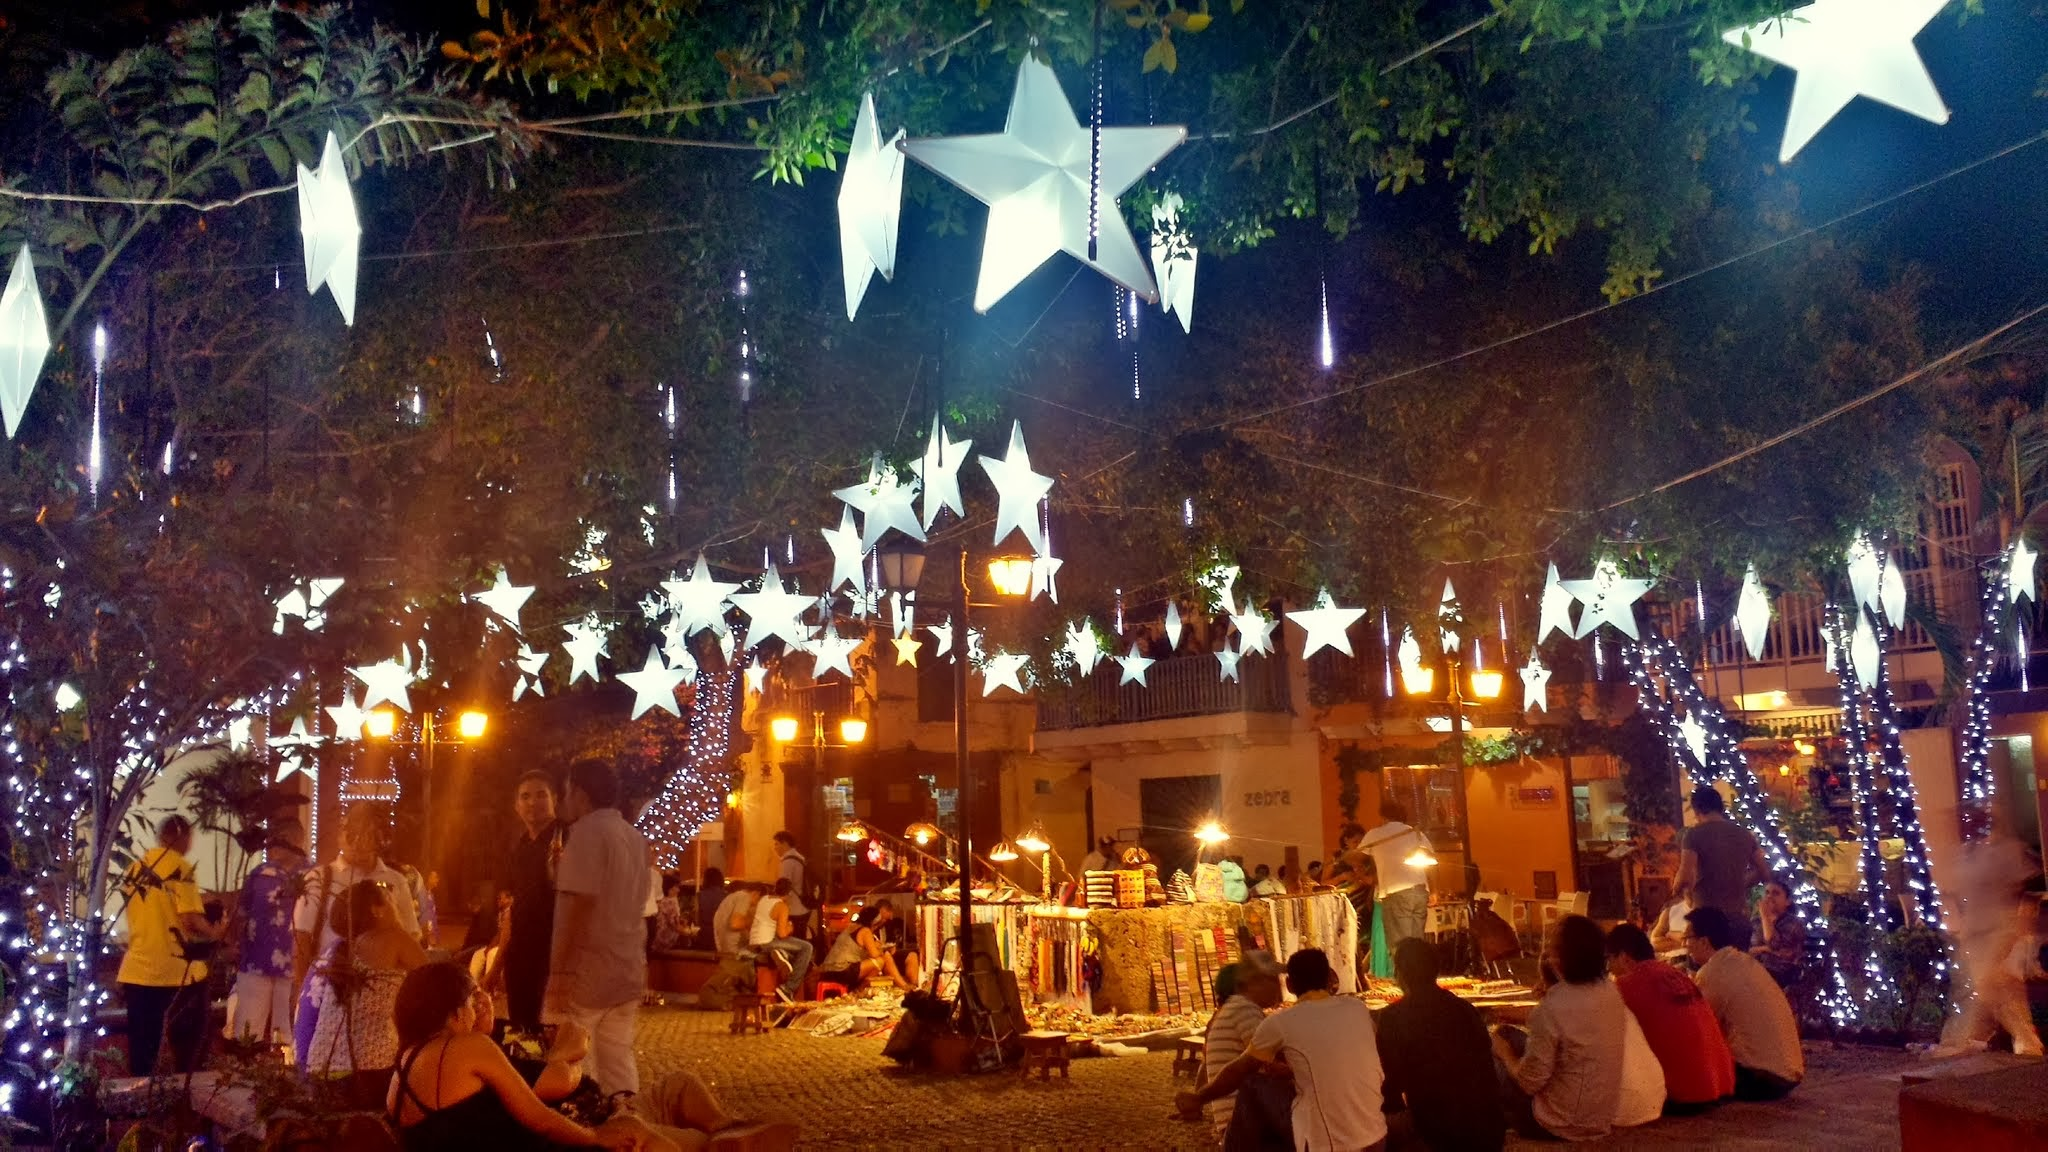 The lovely Plaza de San Diego near our hostel, decked out for Christmas